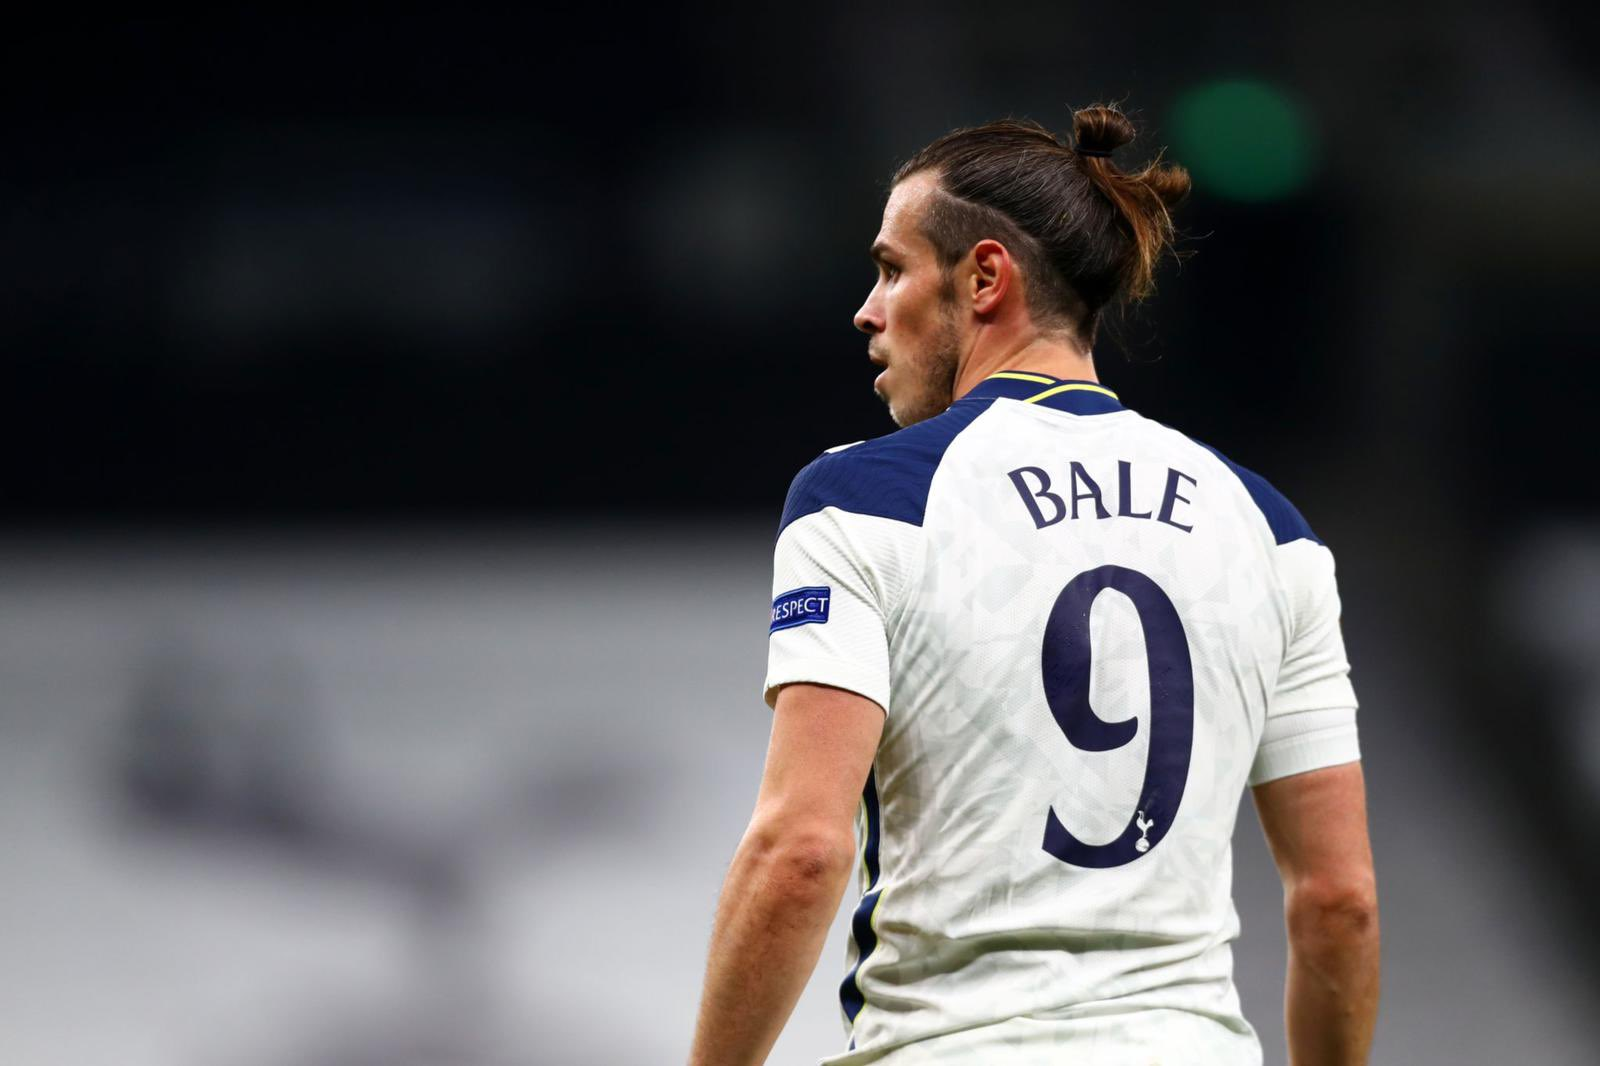 Gareth Bale returned to Tottenham in the summer